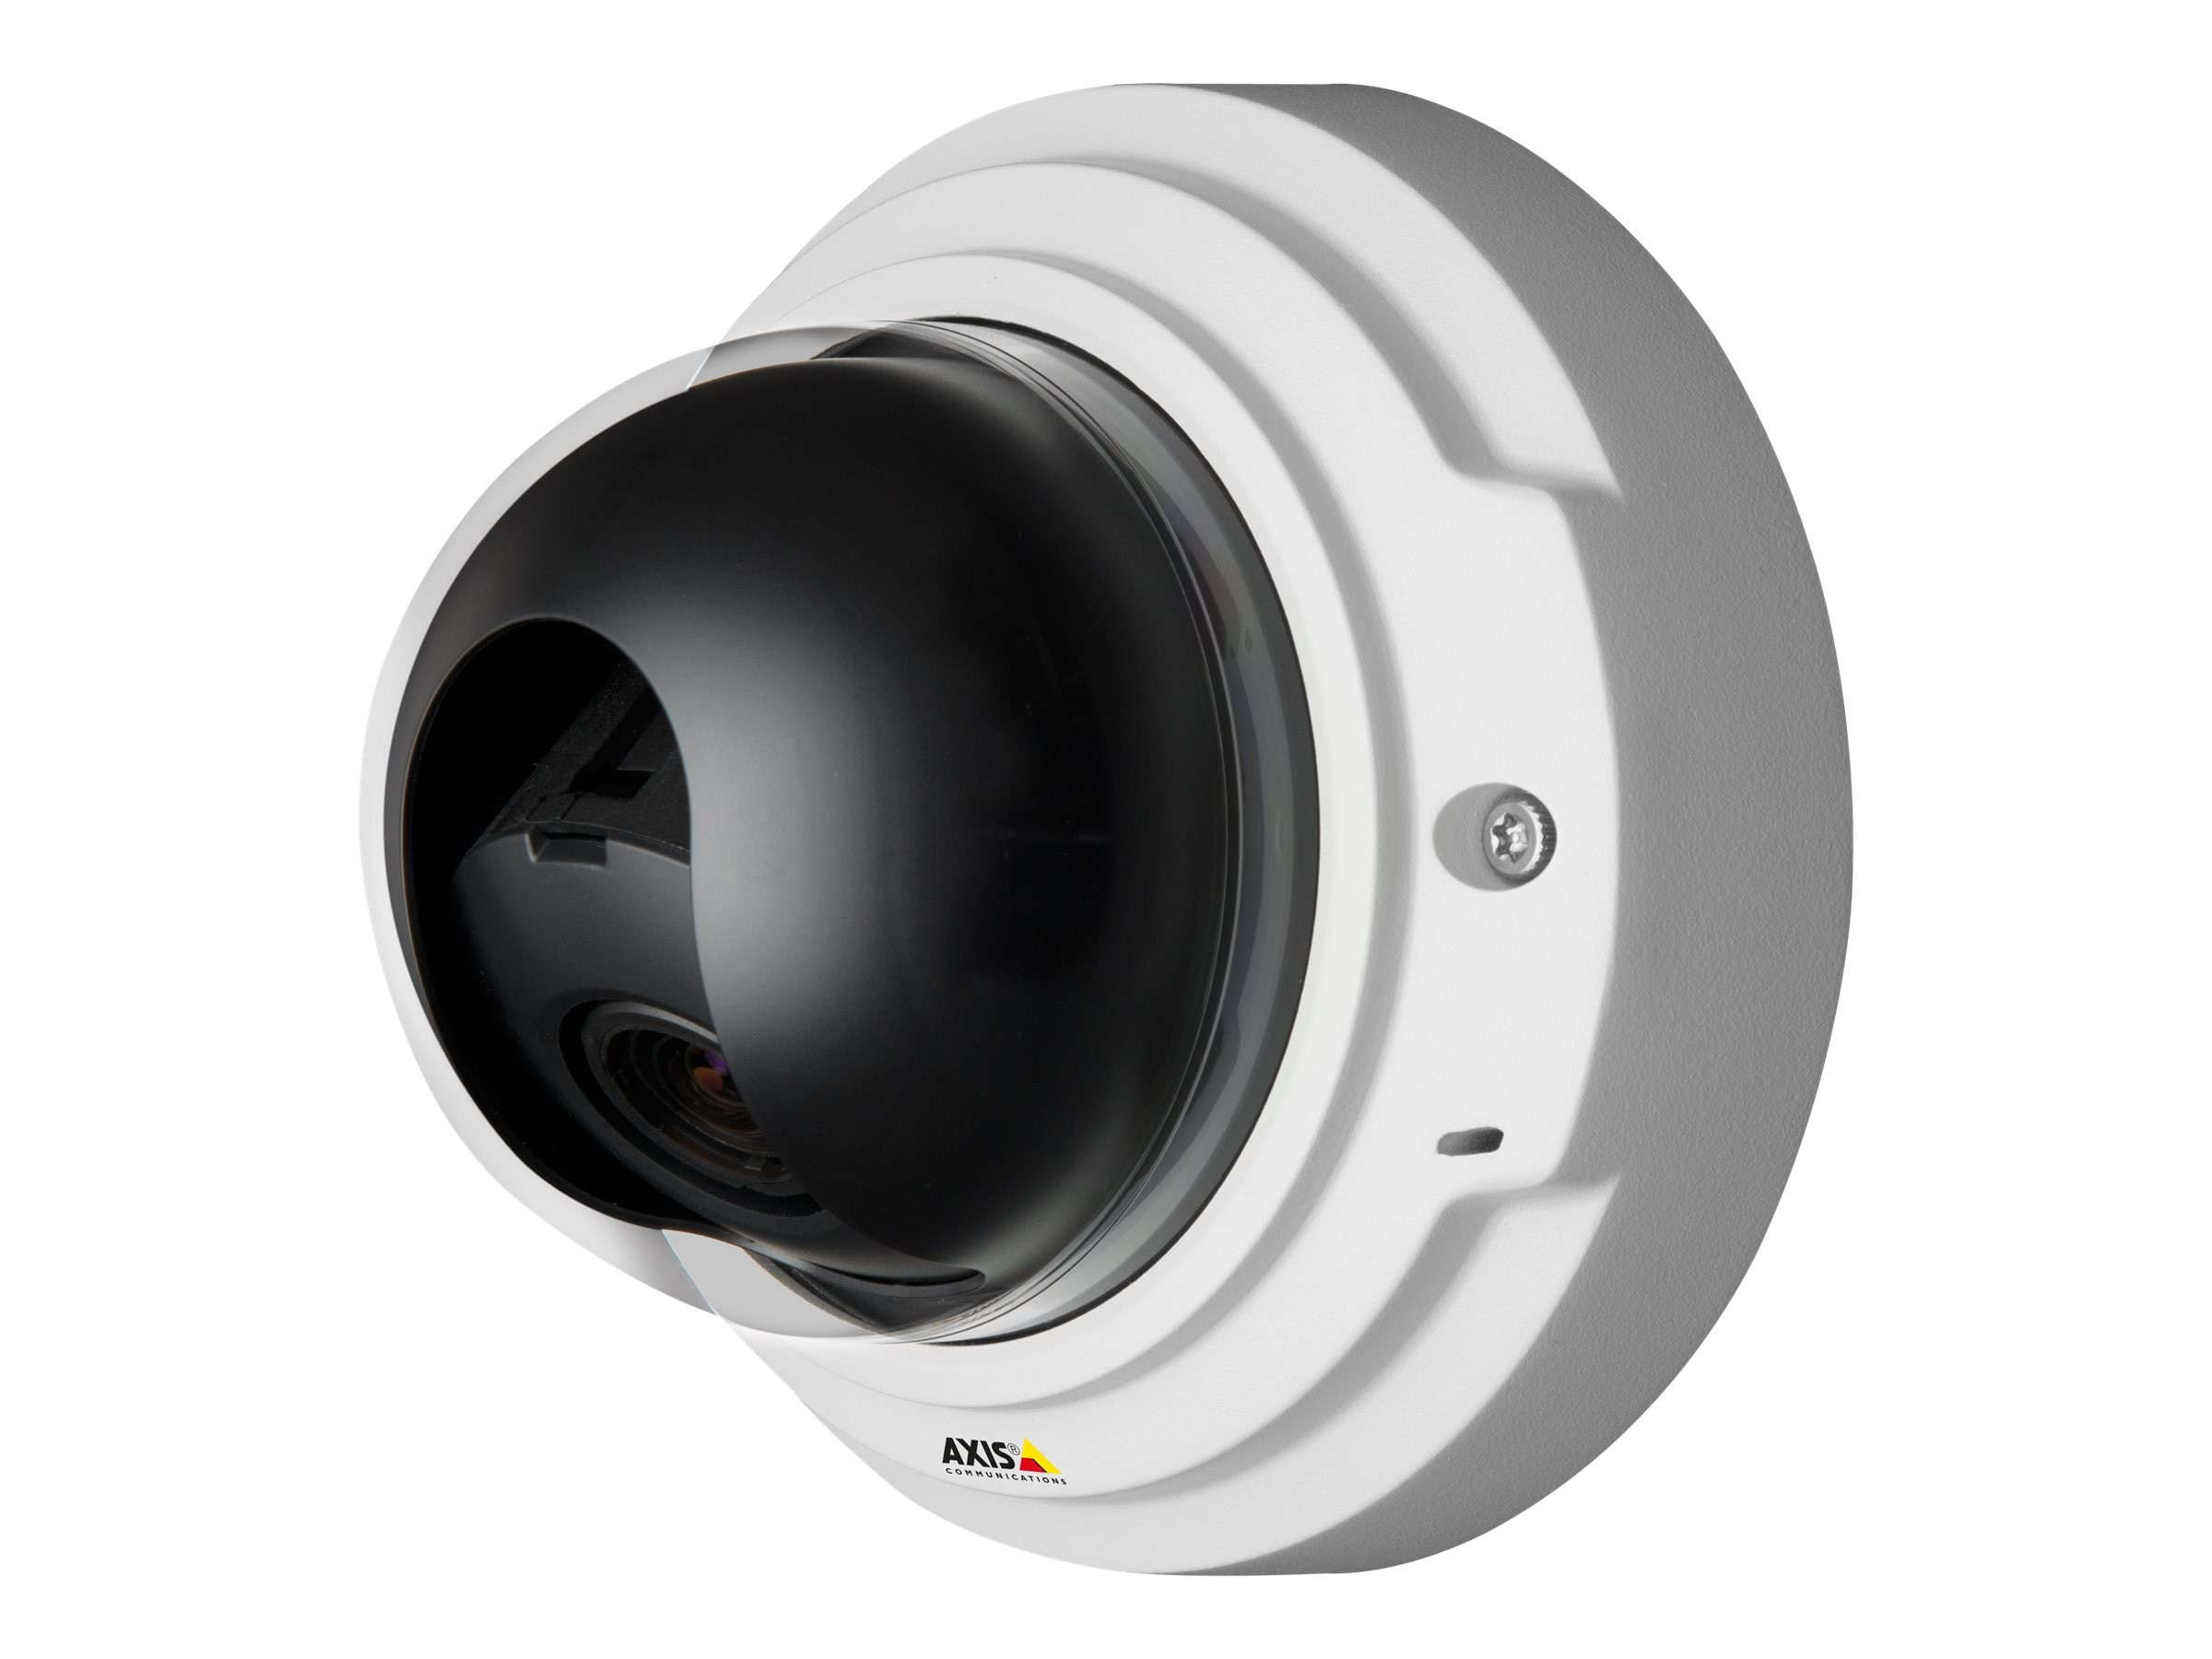 Axis P3367-V Fixed Vandal-Proof Dome Camera, 5MP, 3-9mm Lens